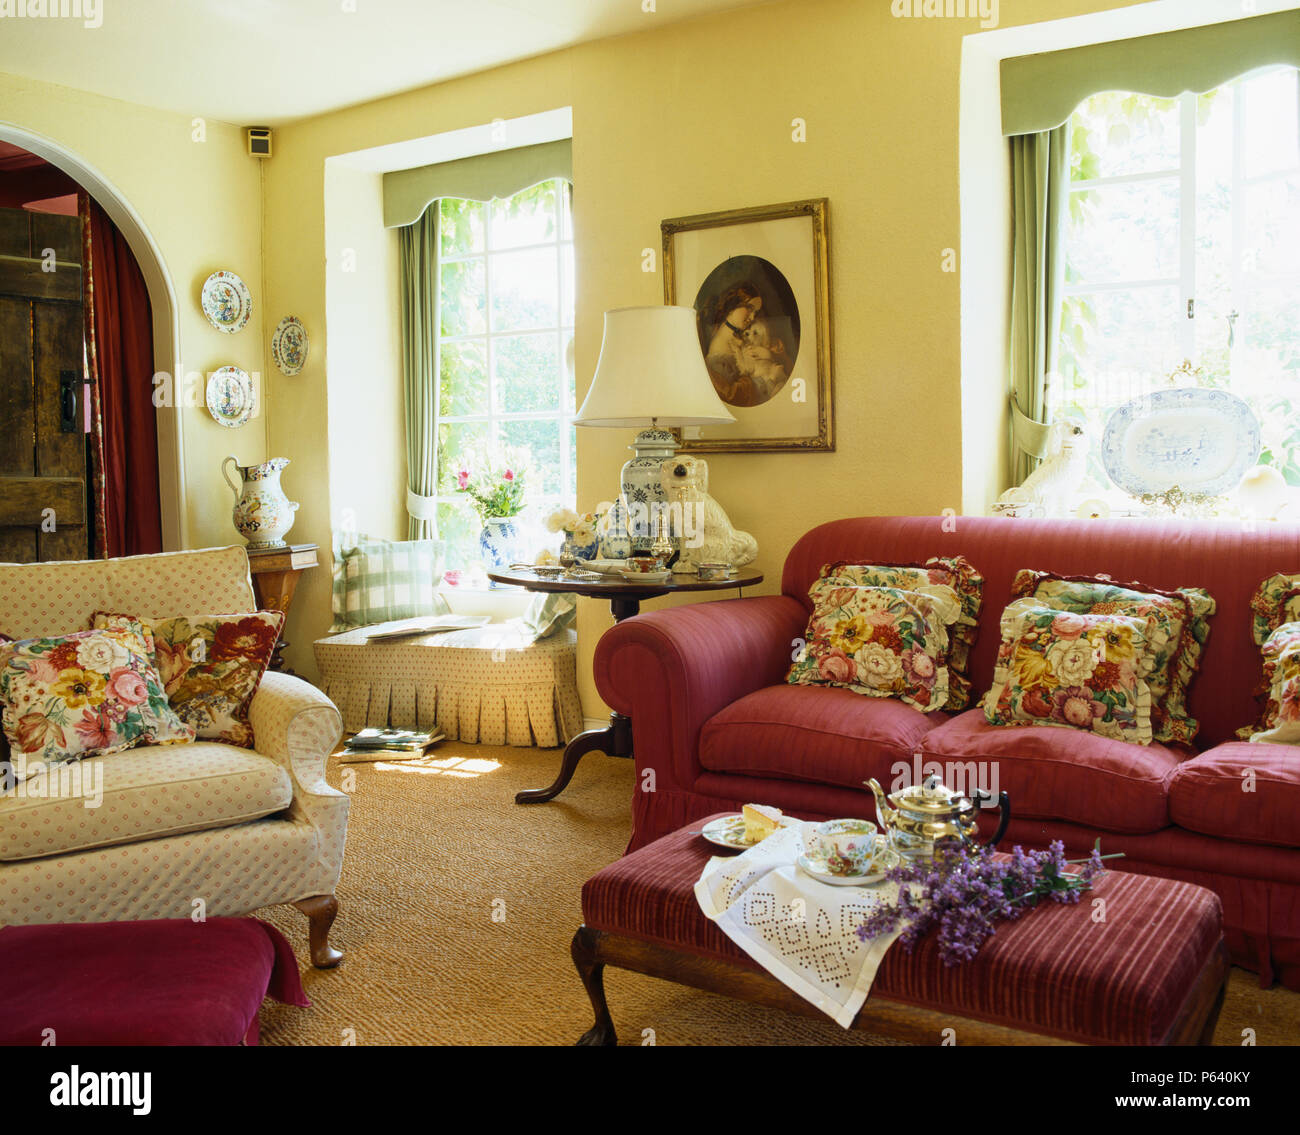 rose-patterned cushions on red sofa and cream armchair in ...